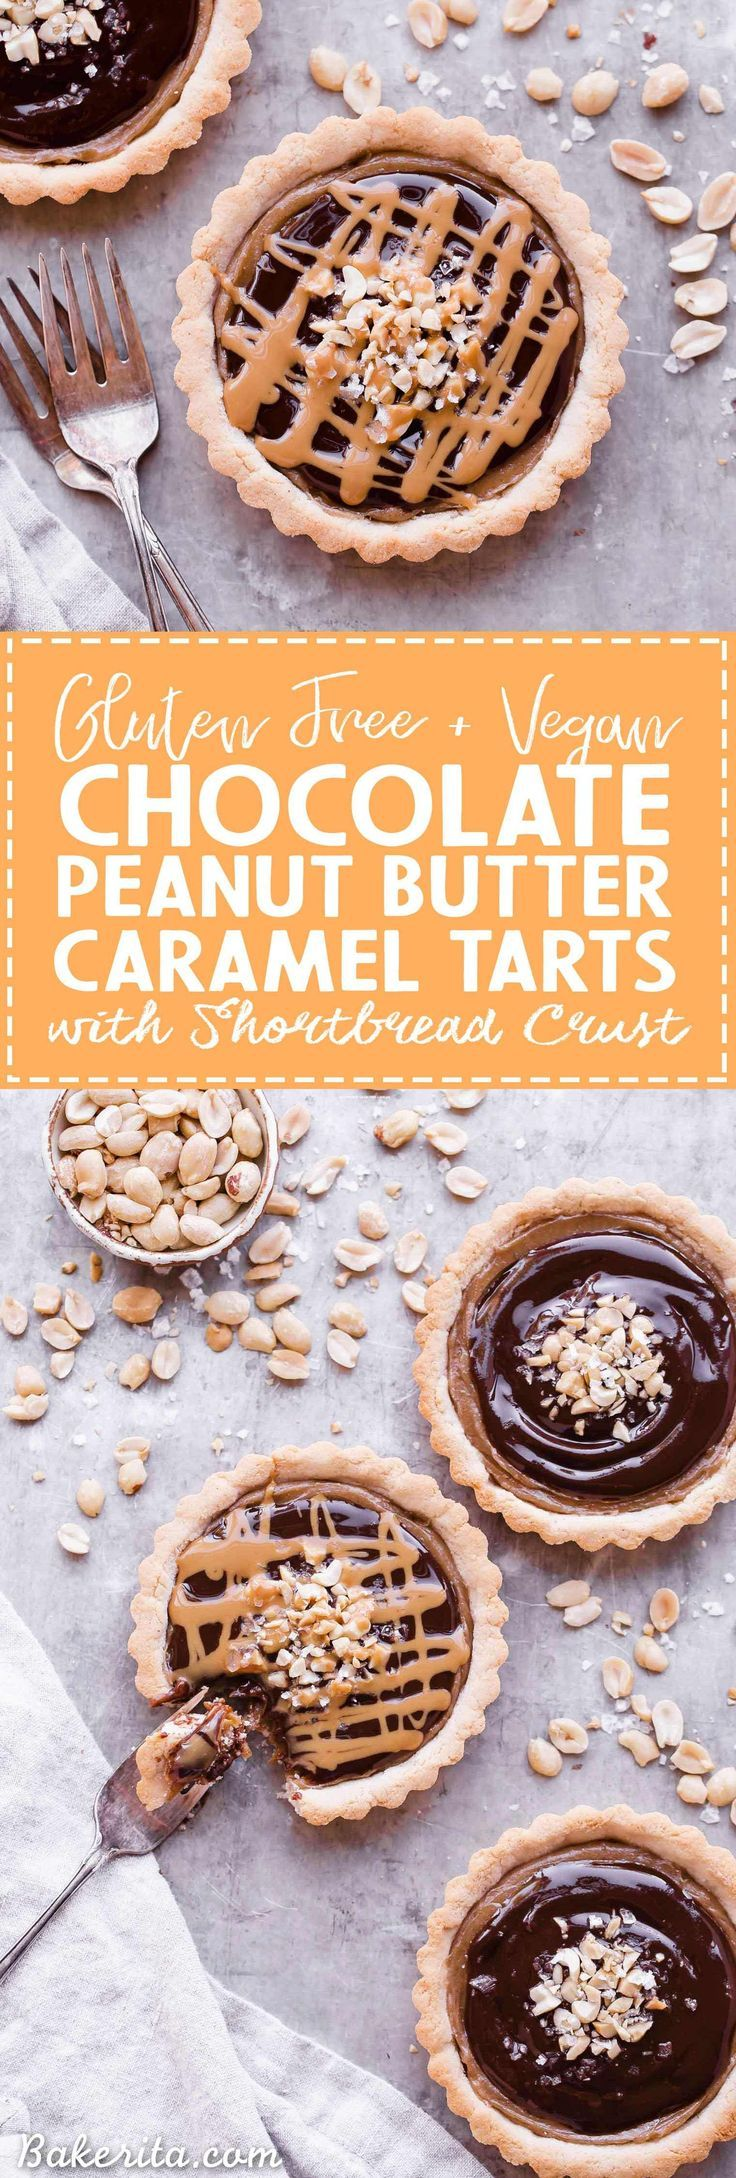 These ChocolatePeanutButter Caramel Tarts have a crunchy shortbread crust that's filled with a creamy peanut butter date caramel and topped with creamy chocolate ganache! This decadent tart recipe is gluten-free,grain-free and vegan.